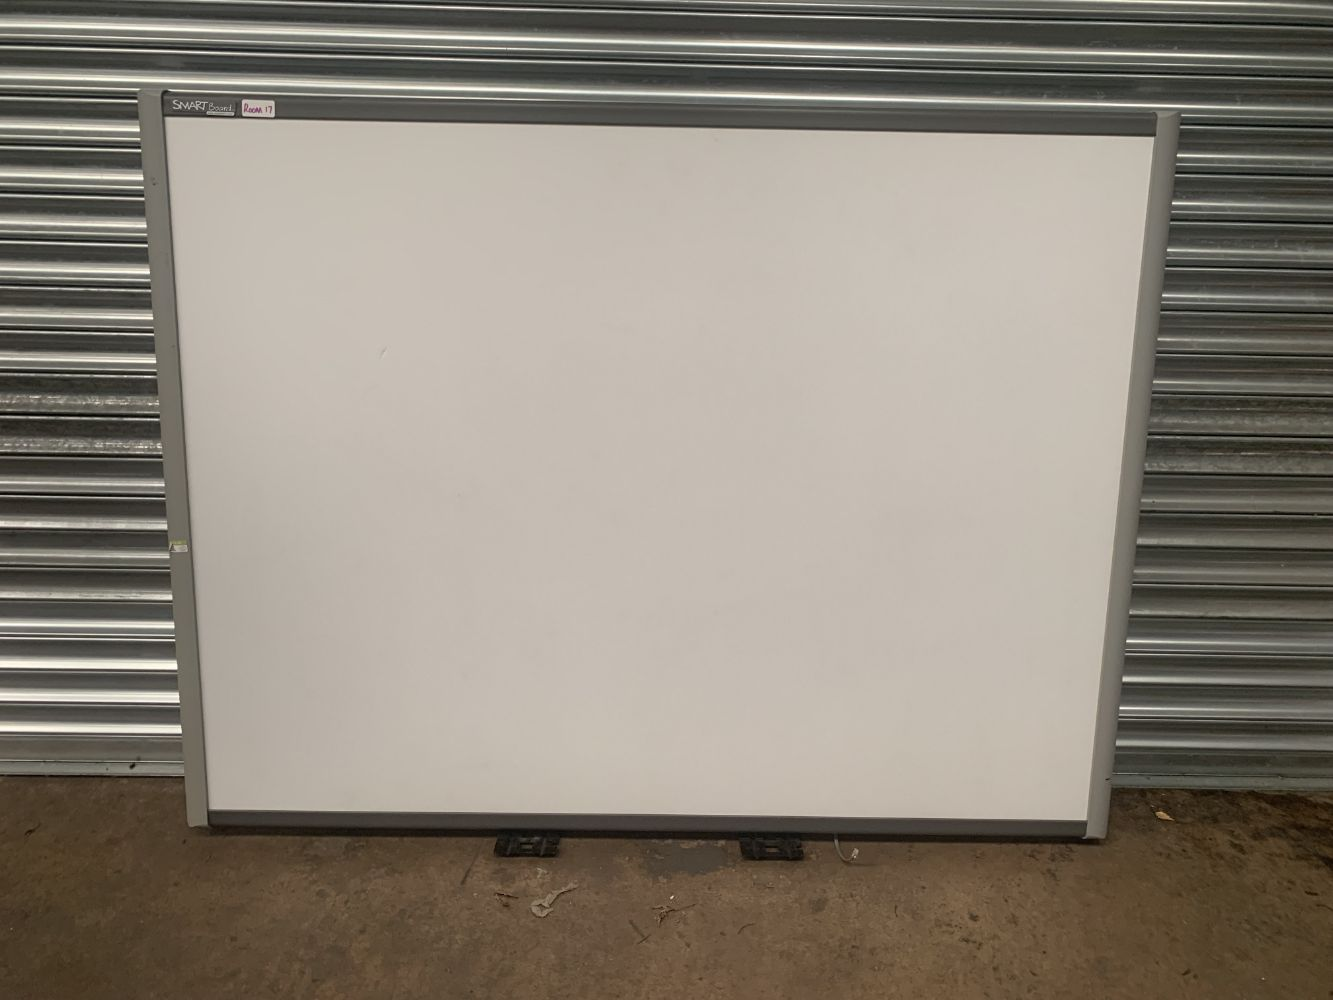 Office Equipment & Furniture Sale | Smart Interactive Whiteboards | Desks | Drawer Units/Bookcases | Office Chairs and more | Ends 28 Sept 2021